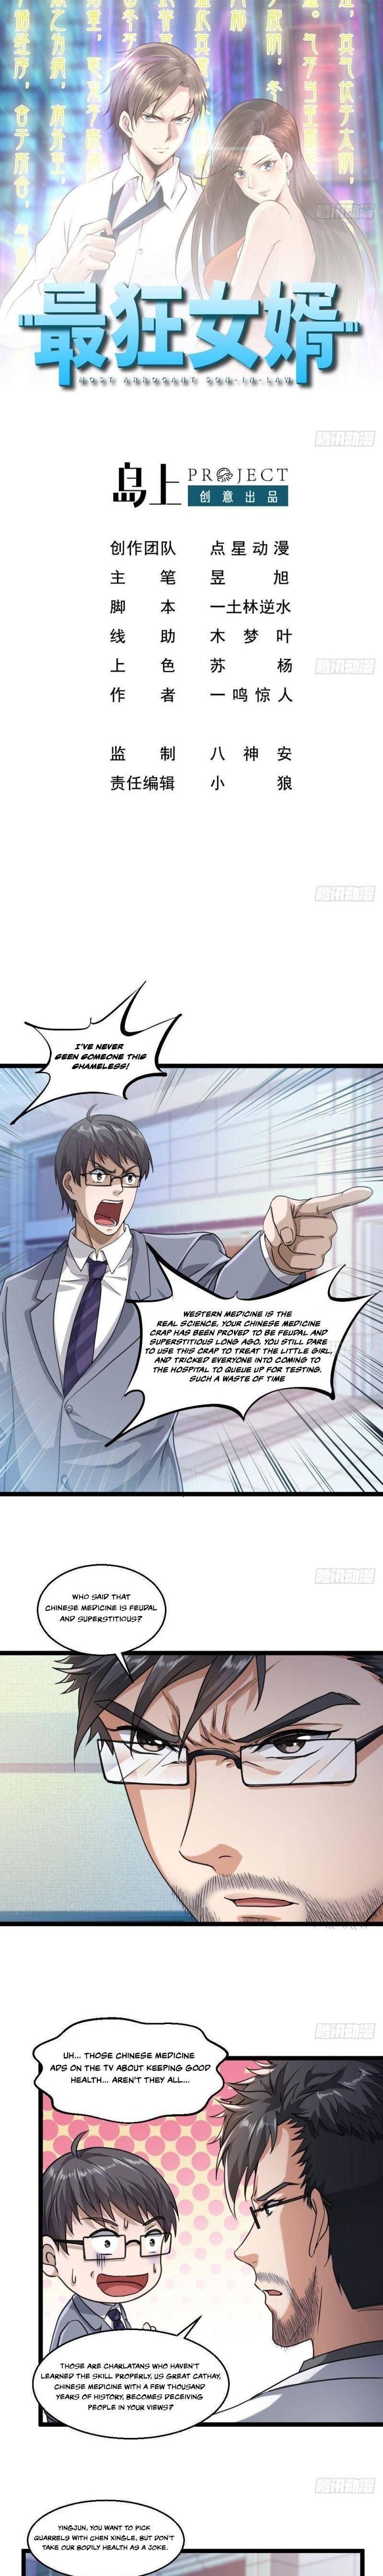 Capital's Most Crazy Doctor Chapter 25 page 2 - Mangakakalots.com